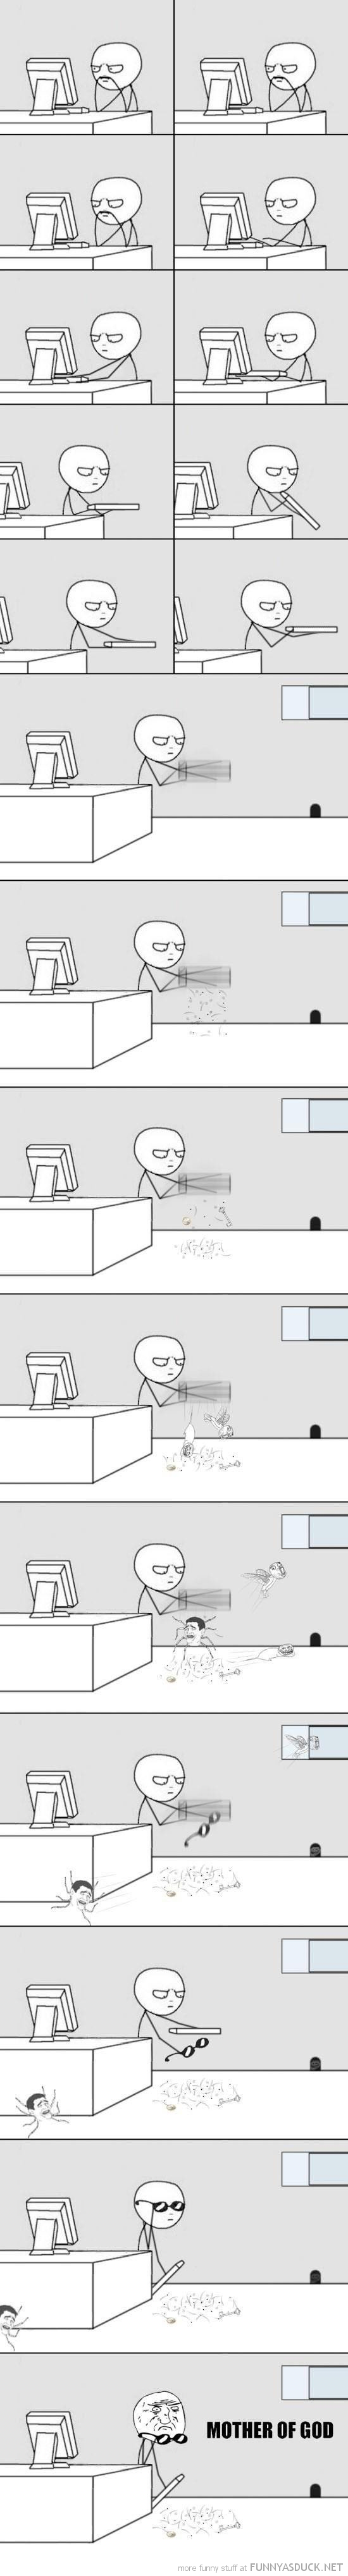 dirty keyboard rage comic meme funny pics pictures pic picture image photo images photos lol